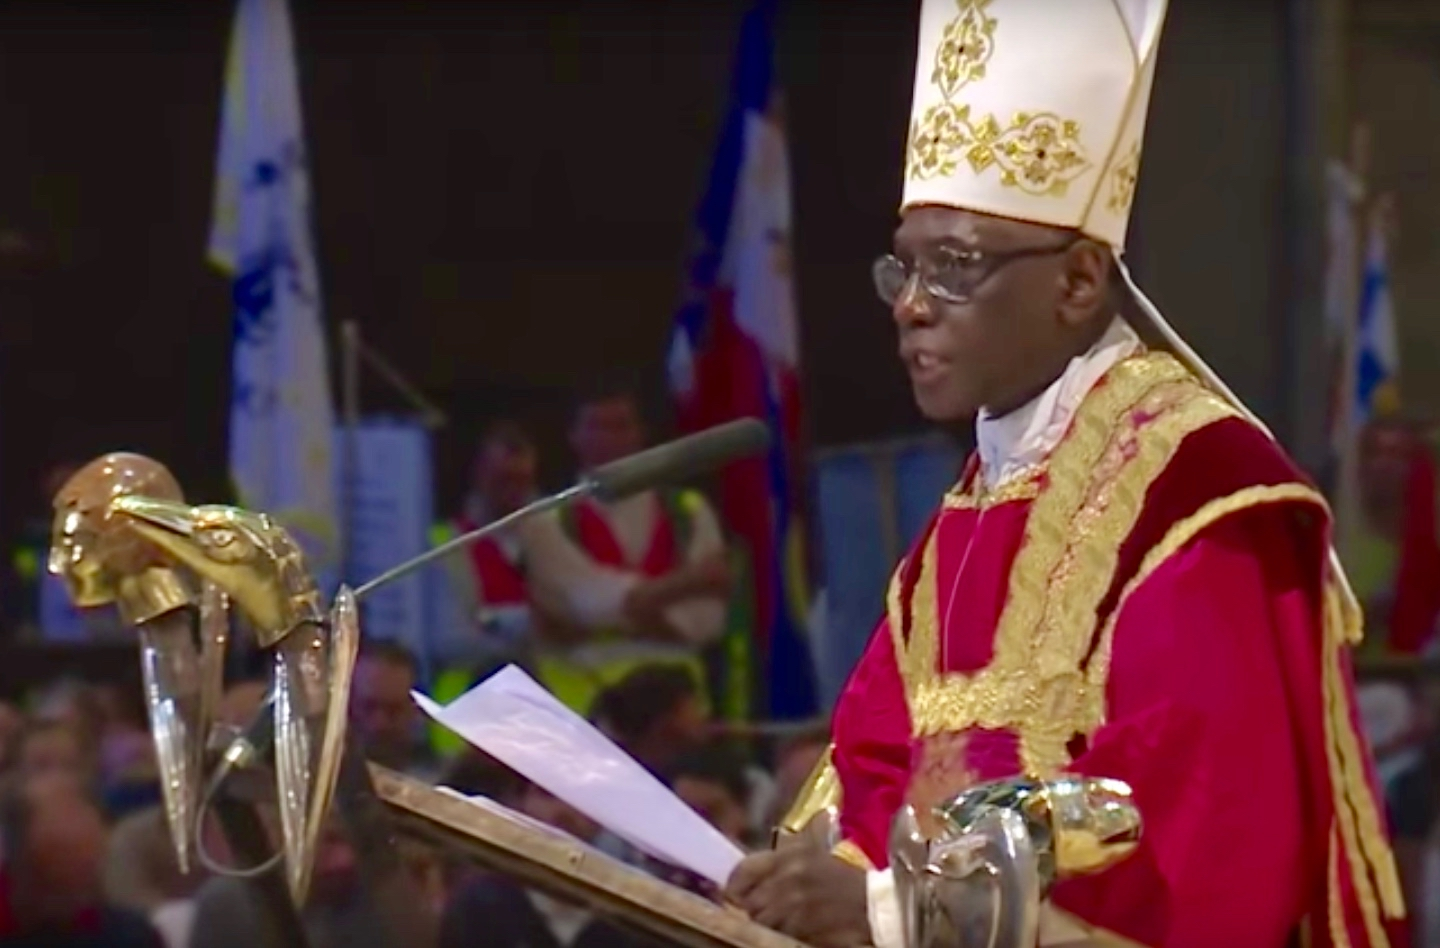 Cardinal Robert Sarah claims enemies of the Catholic Church say he's opposing the Pope. (PHOTO/Agencies).